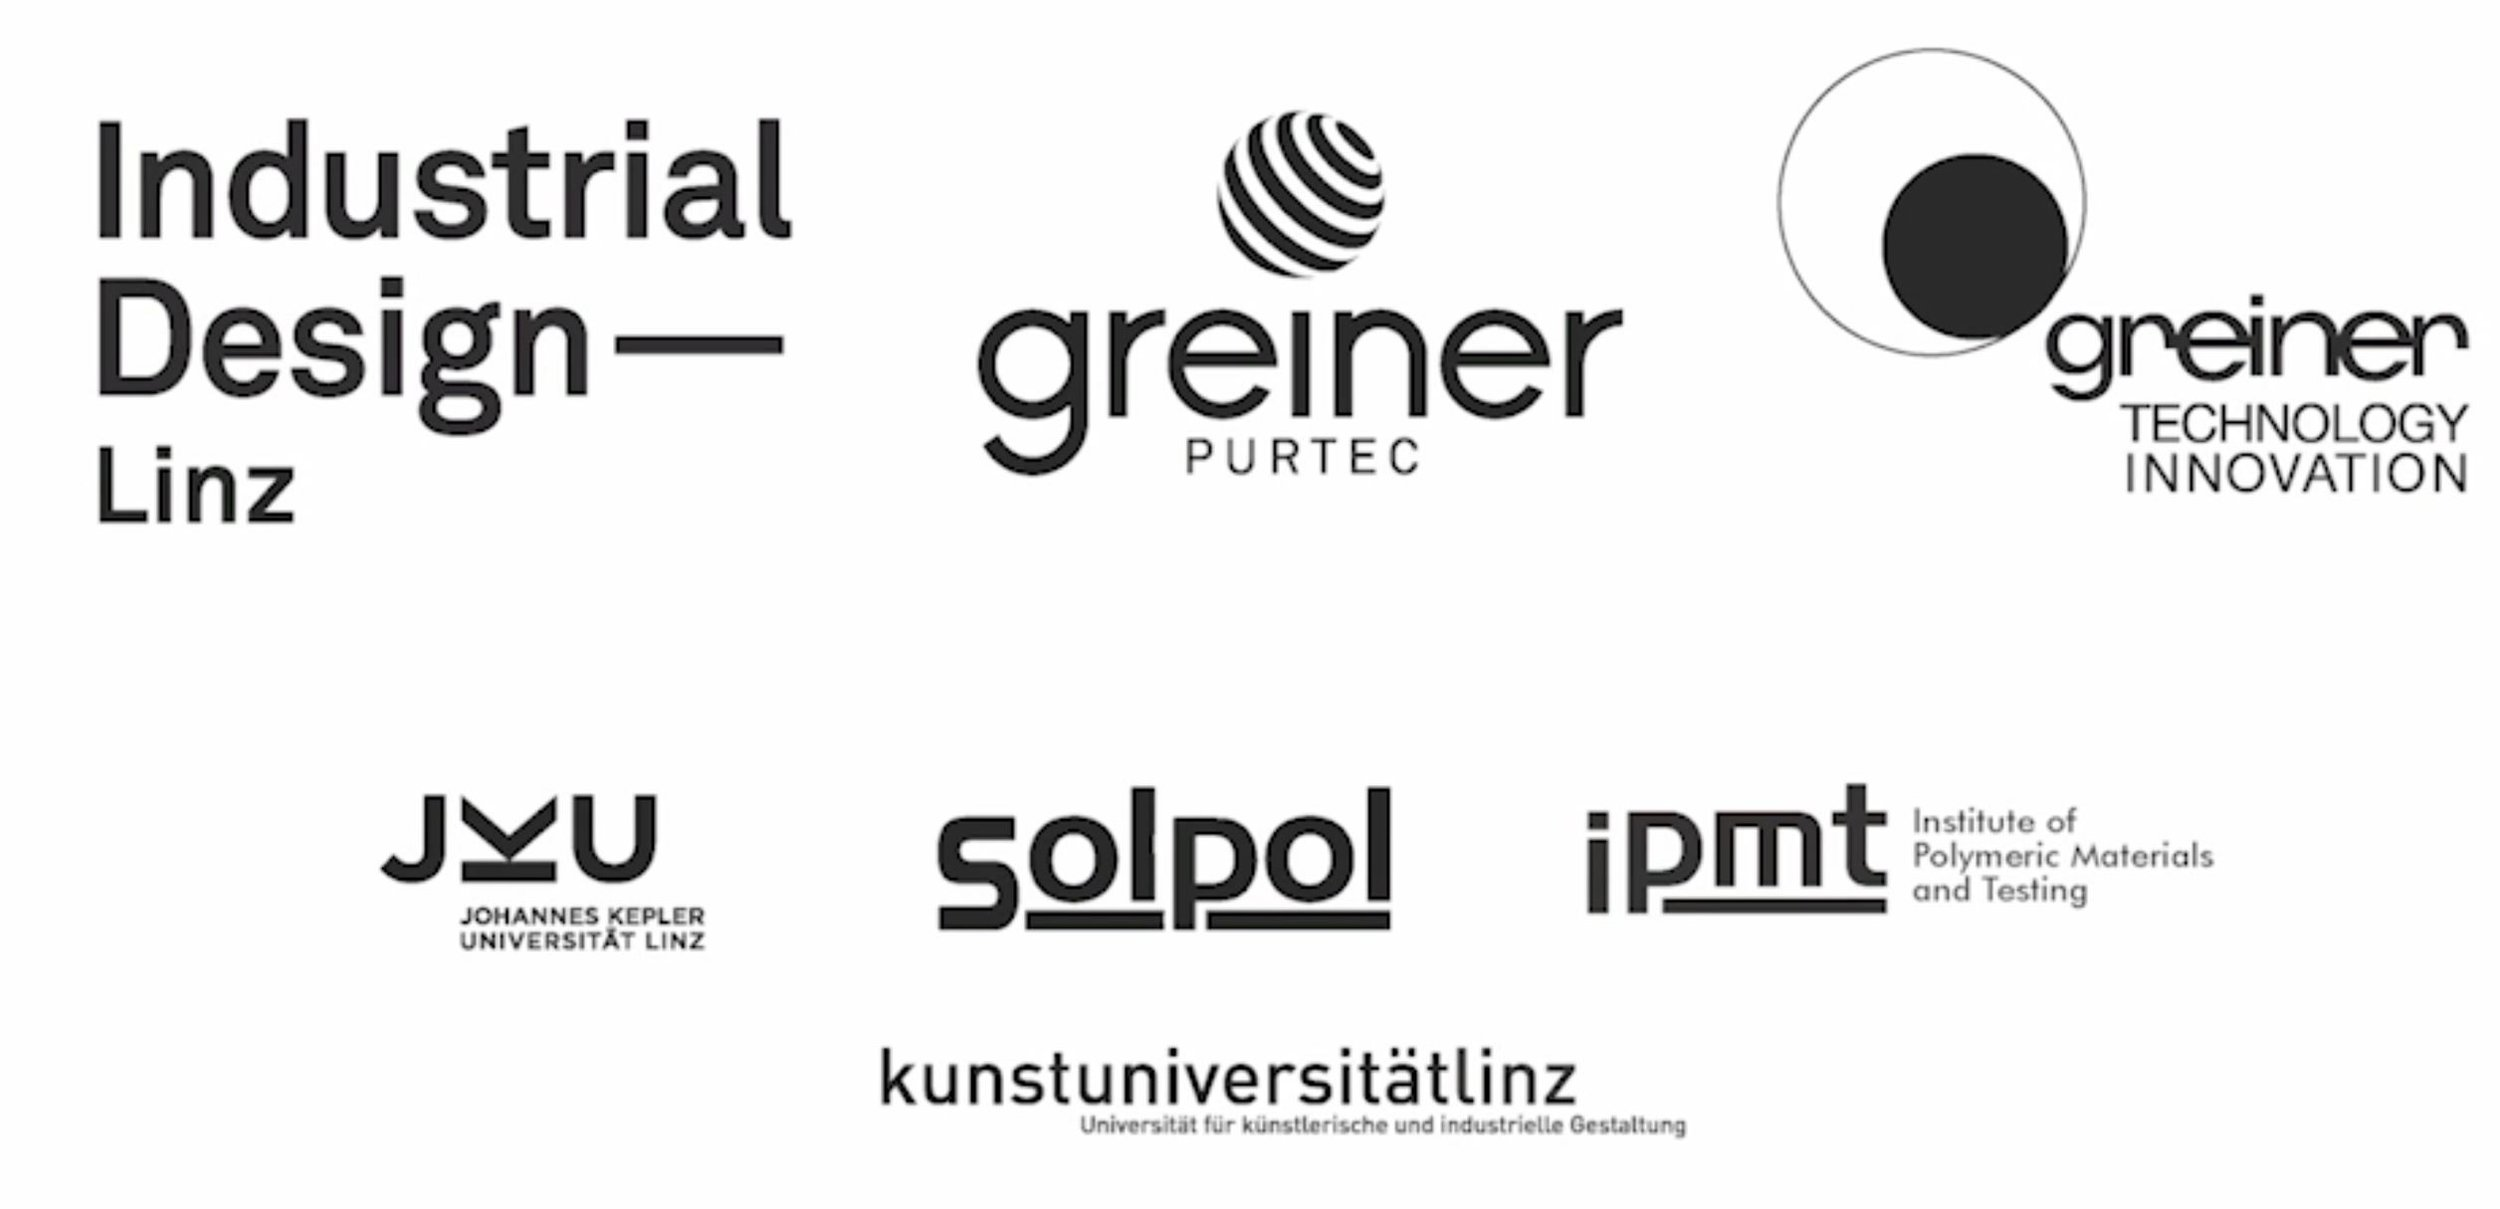 Projektpartner: Greiner PURTEC, Greiner TECHNOLOGY & INNOVATION, IPMT Johannes Kepler Universität Linz, Industrial Design UFG Linz